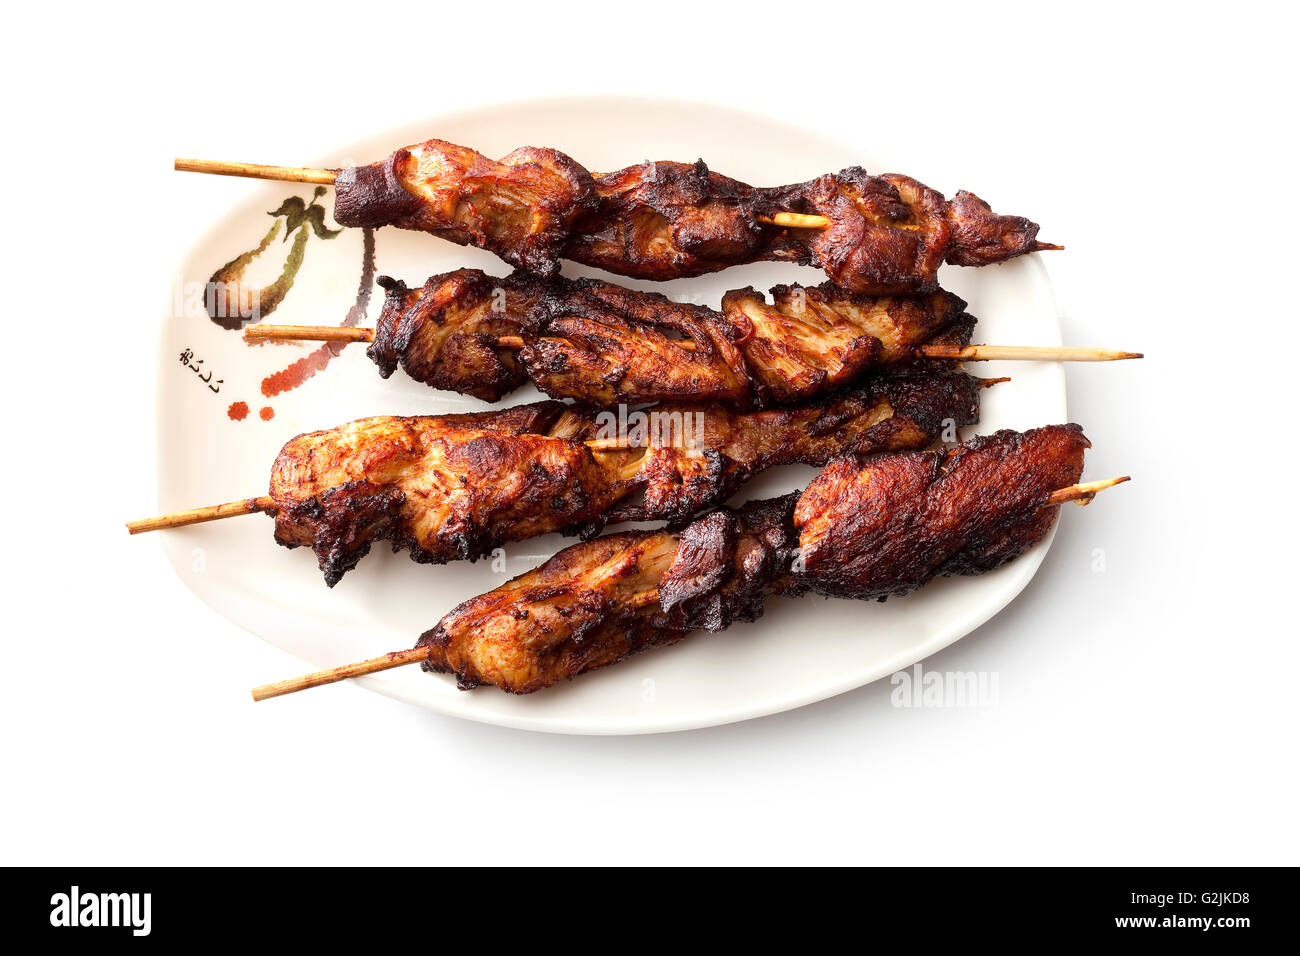 Grilled Chicken Skewers - Stock Image